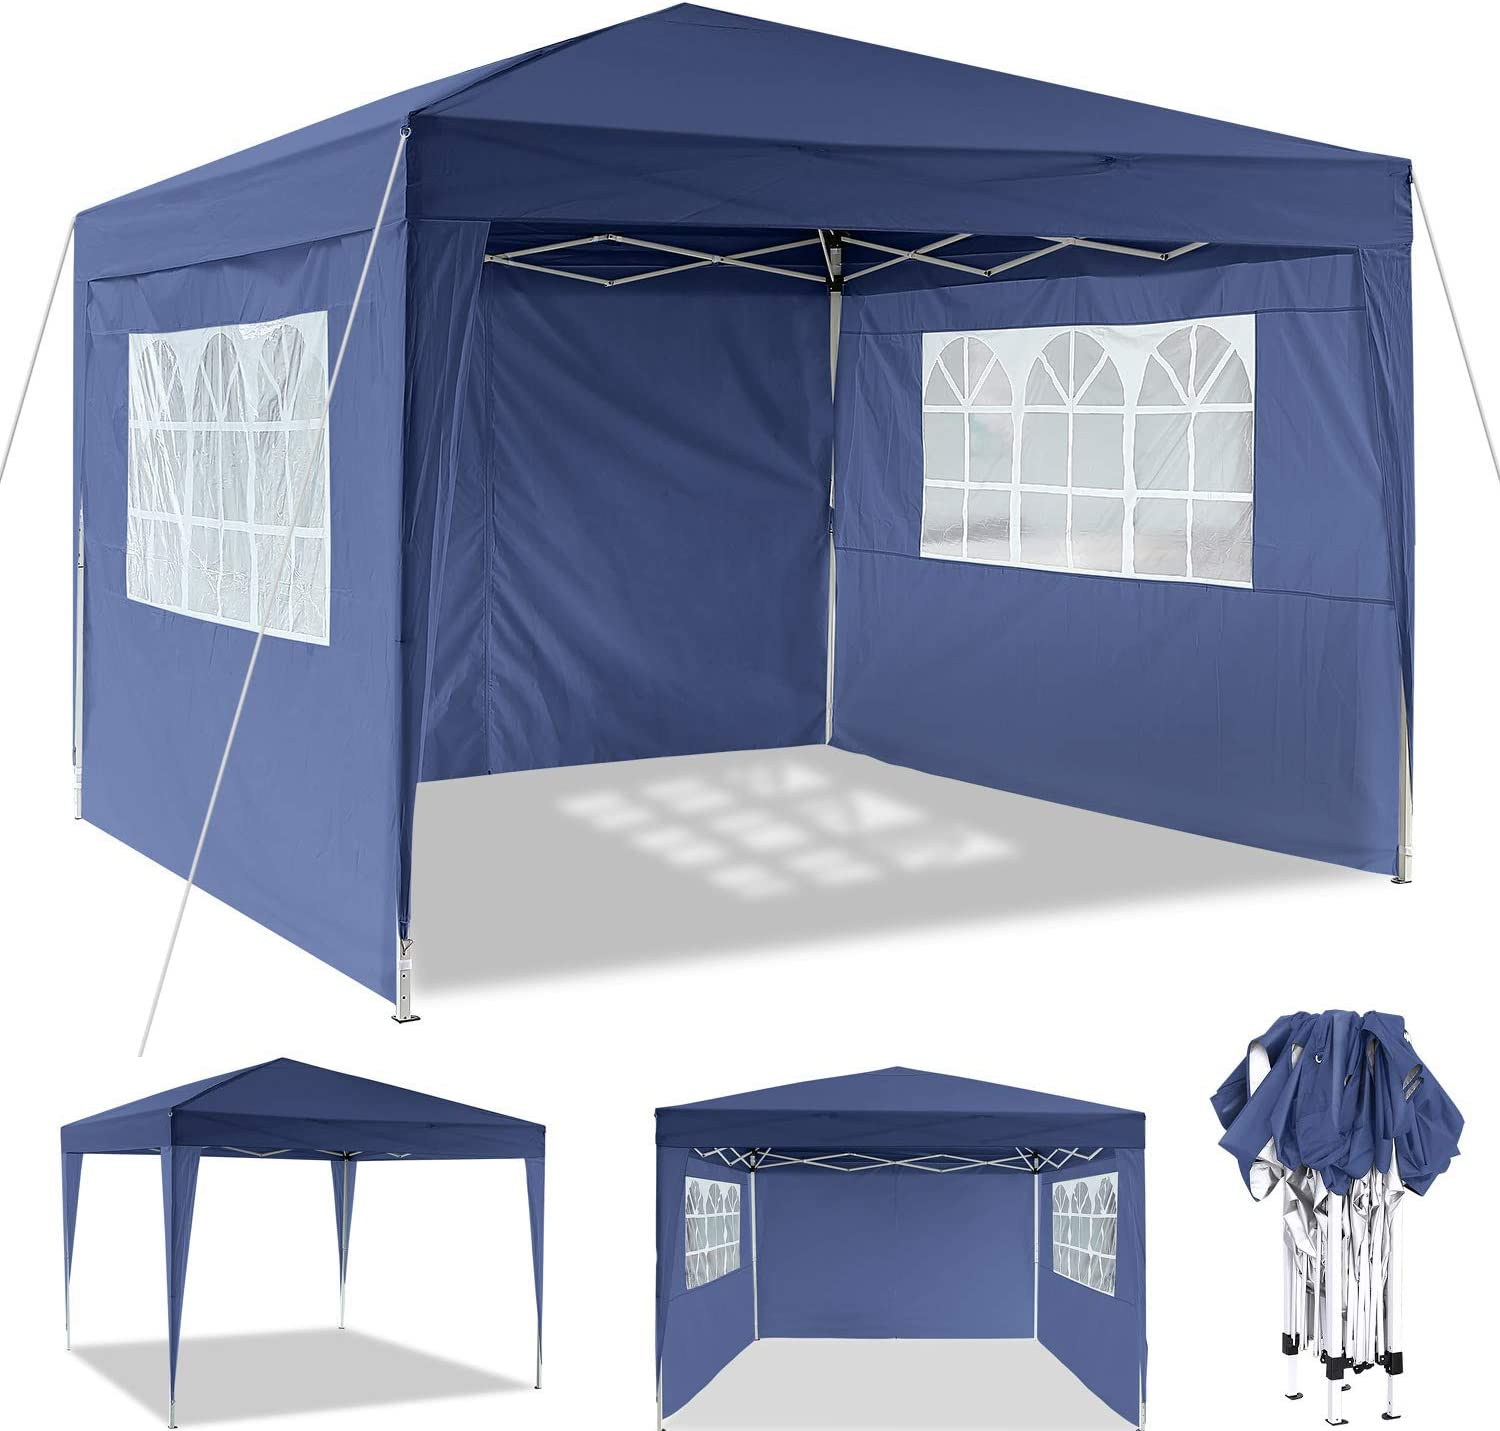 Heavy Duty Gazebo Full Waterproof Sun-protective Marquee Tent with 4 Sidewalls and Carry Bag for Garden YUEBO 3x3m Gazebo Instant Shelter Beach Flea Market